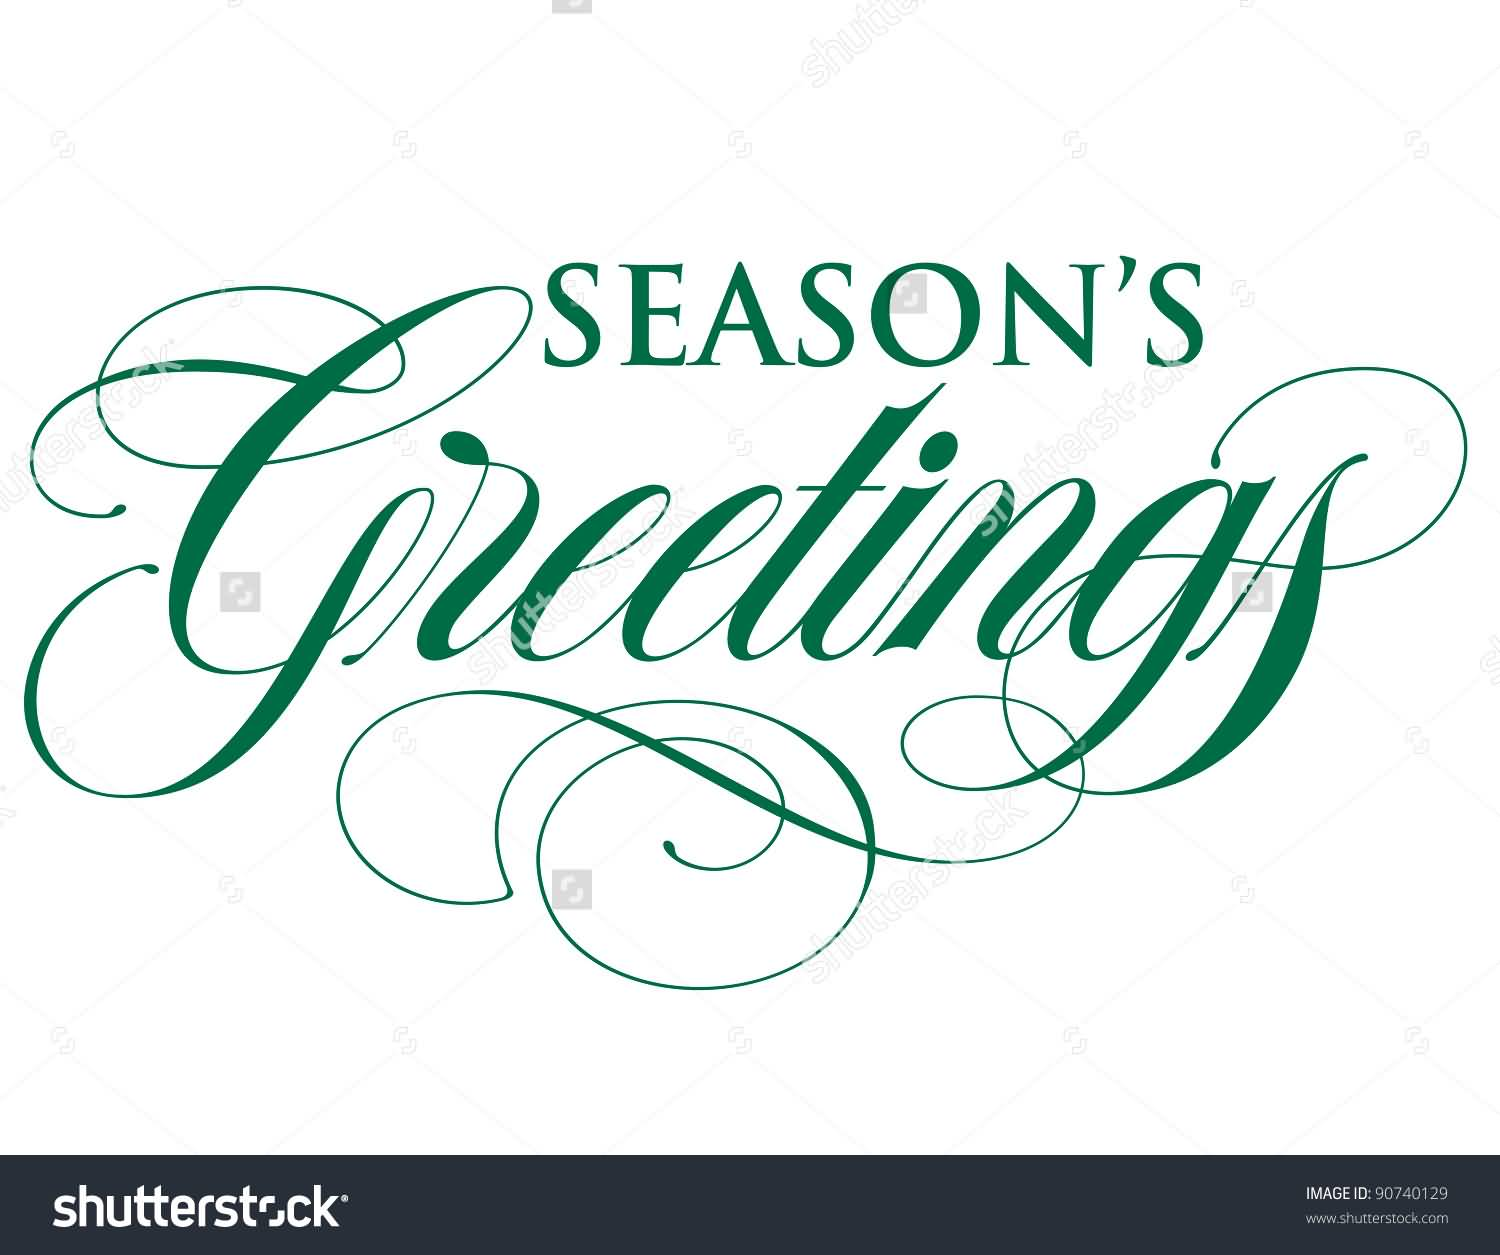 50 most beautiful season s greeting pictures and photos rh askideas com seasons greetings banner clipart seasons greetings banner clipart